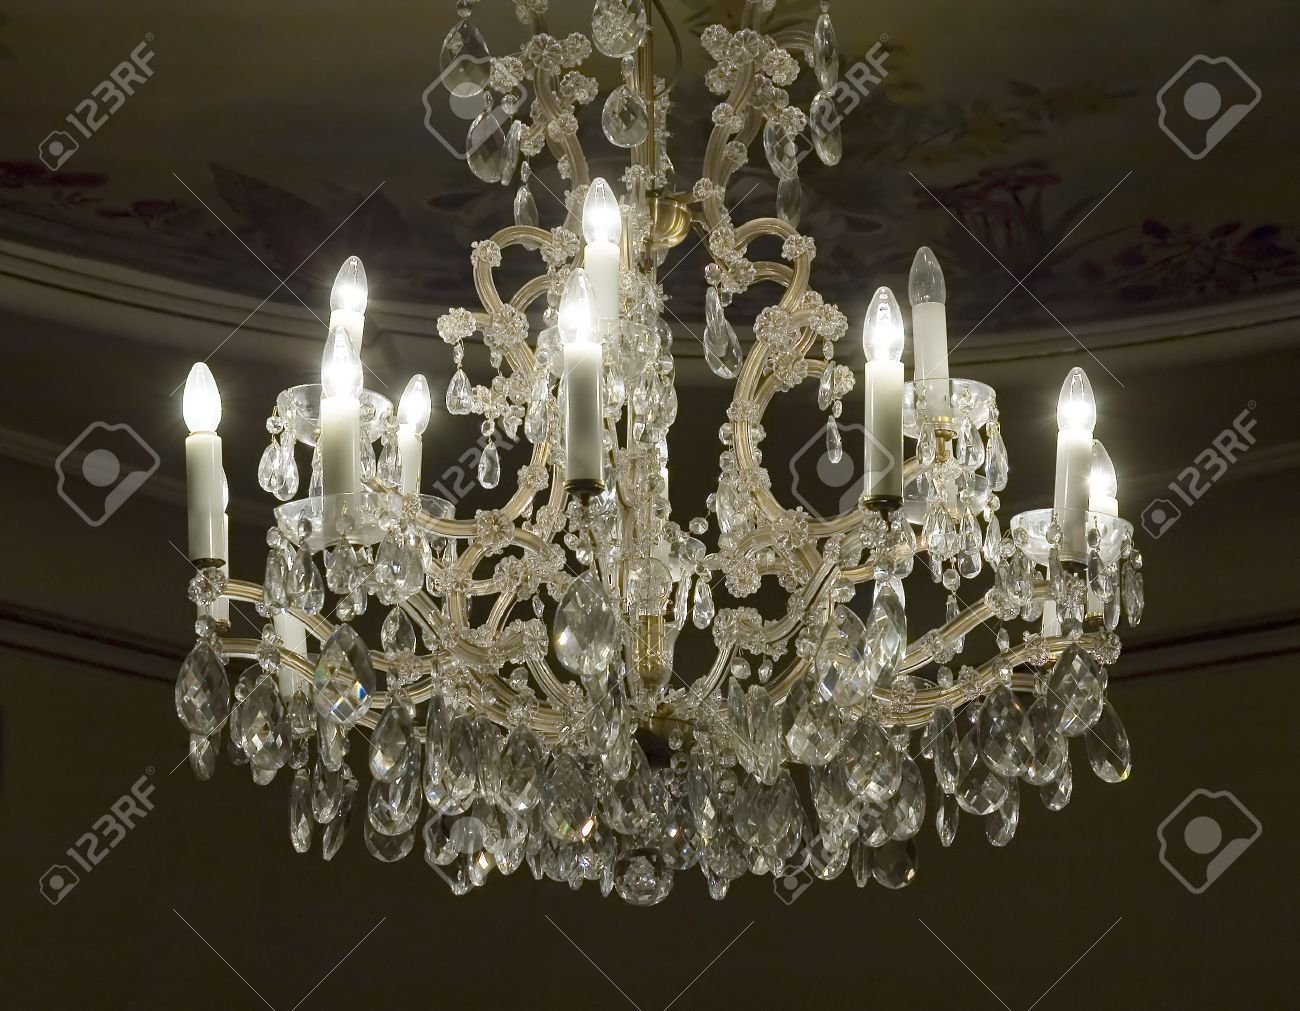 Antique Crystal Chandeliers: Antique crystal chandelier Stock Photo - 3232189,Lighting